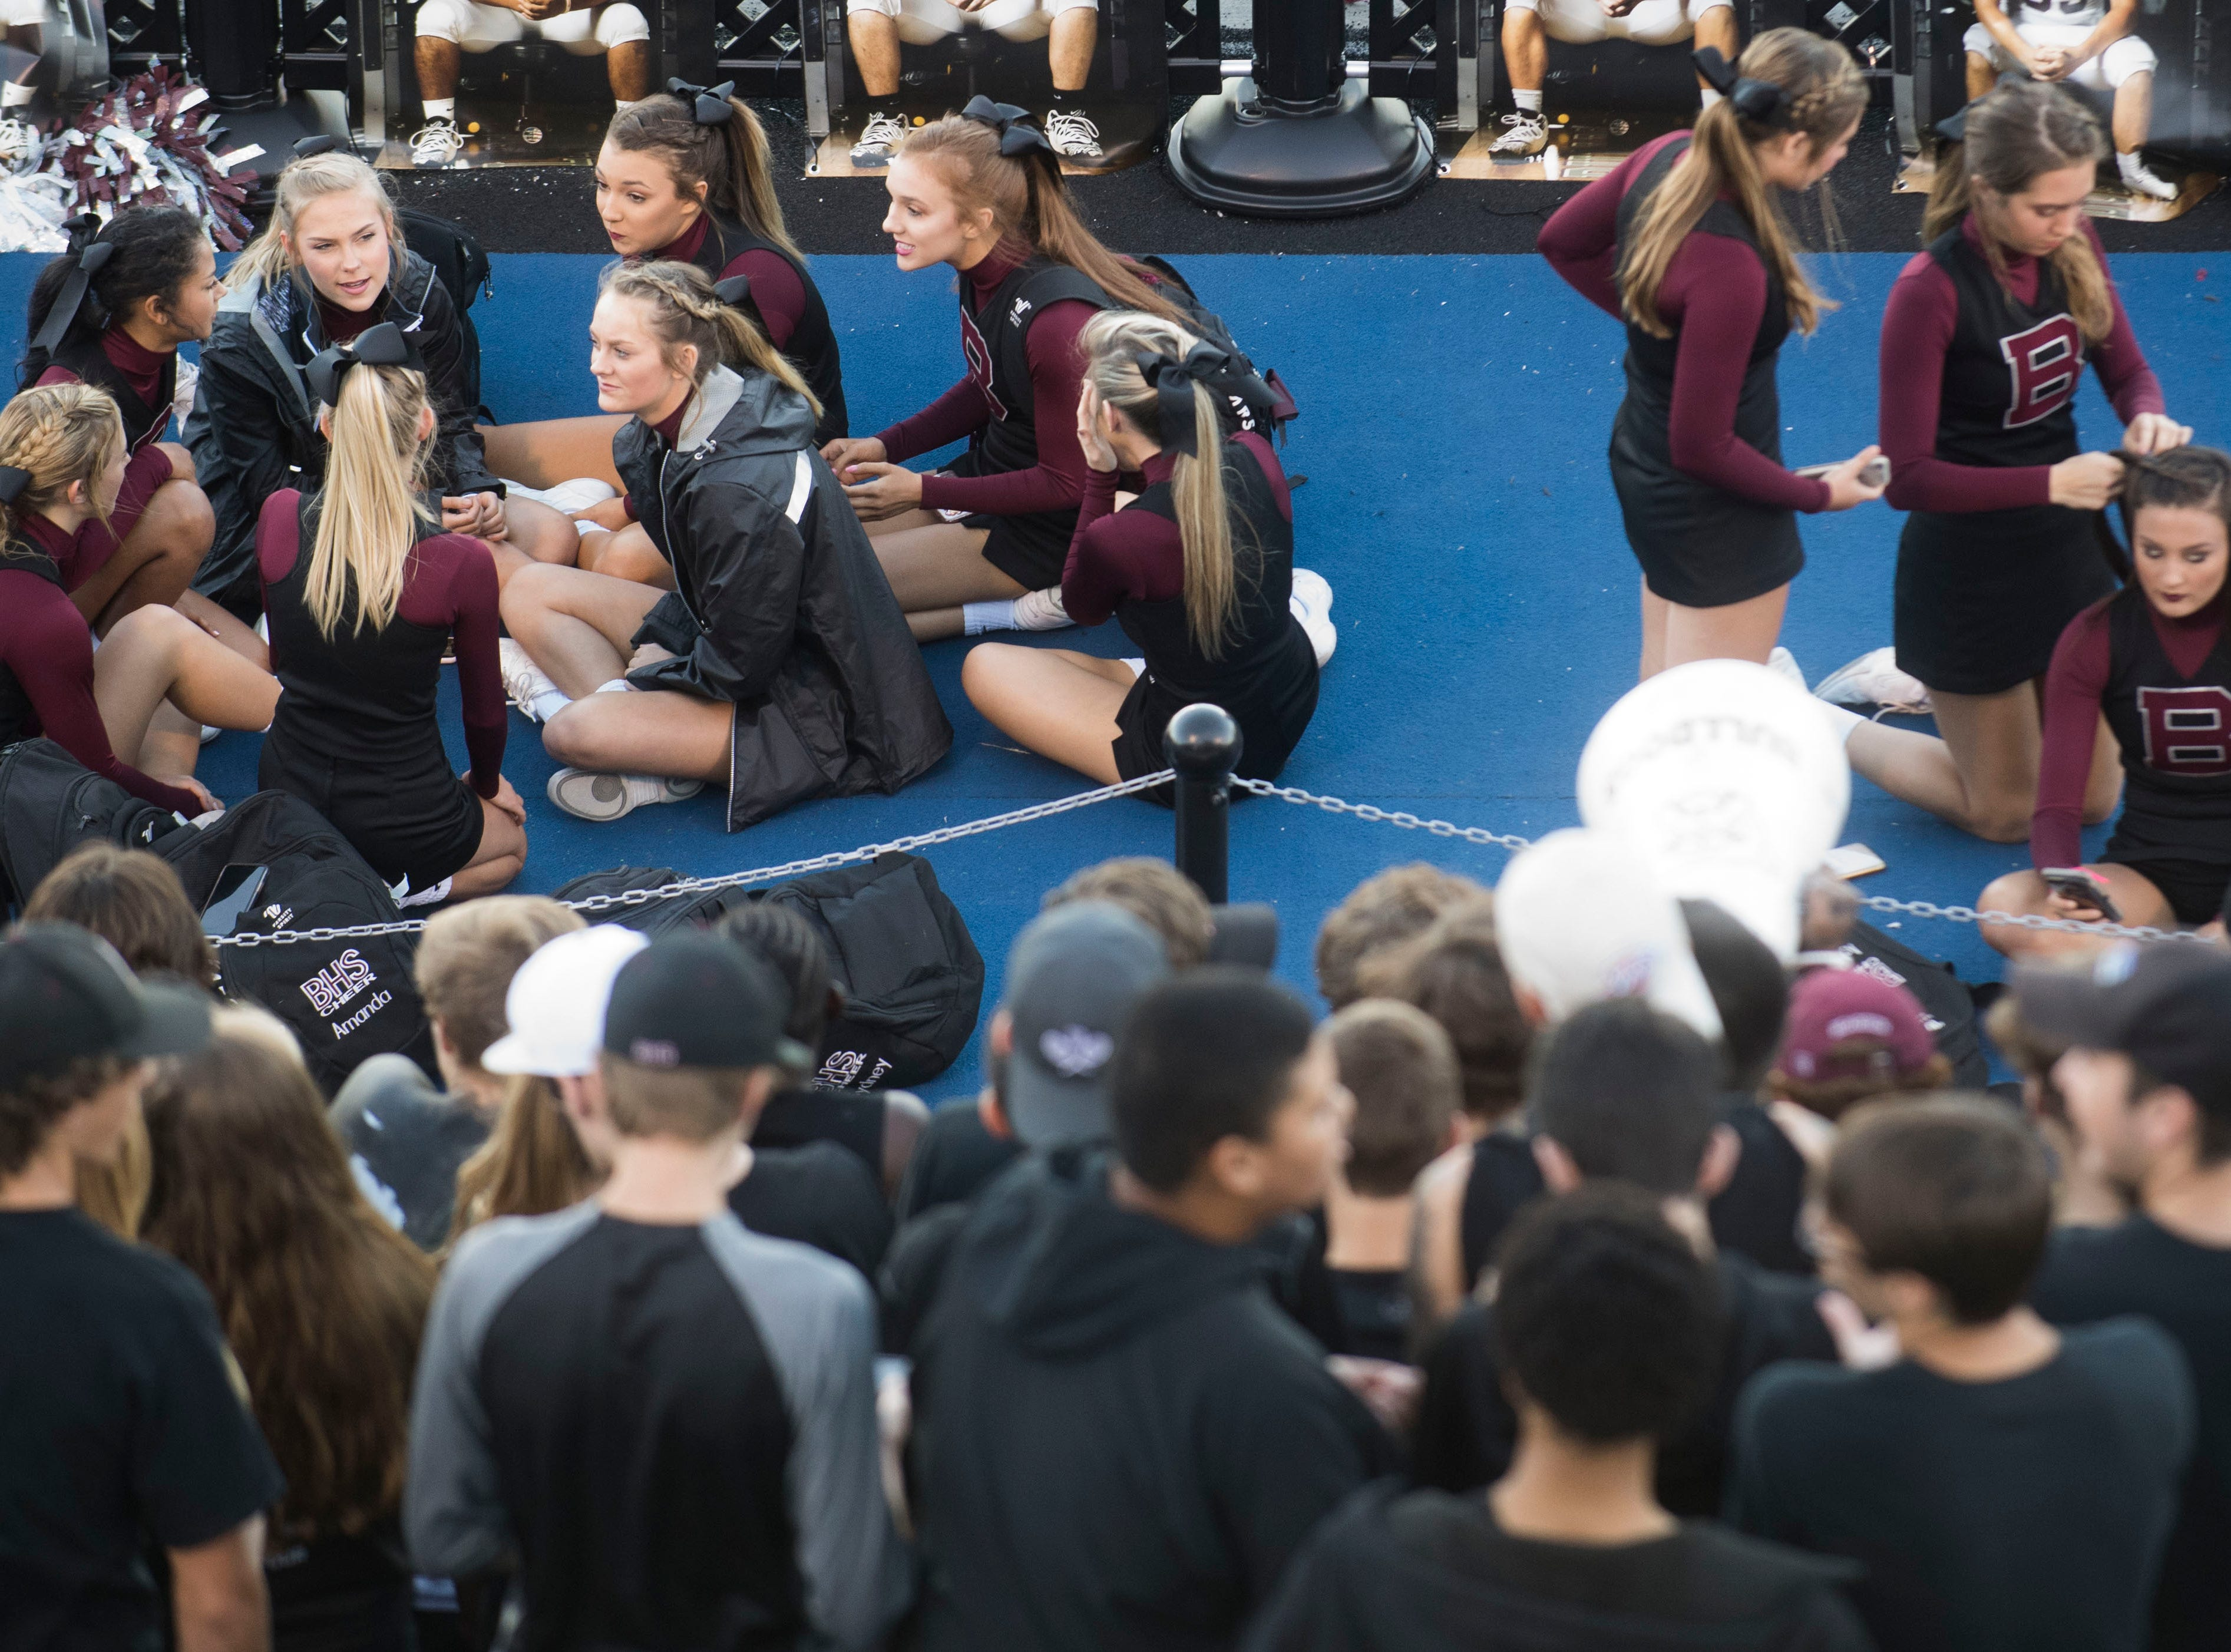 Bearden cheerleaders sit below the stands before a game between Bearden and Farragut at Bearden Thursday, Oct. 11, 2018.